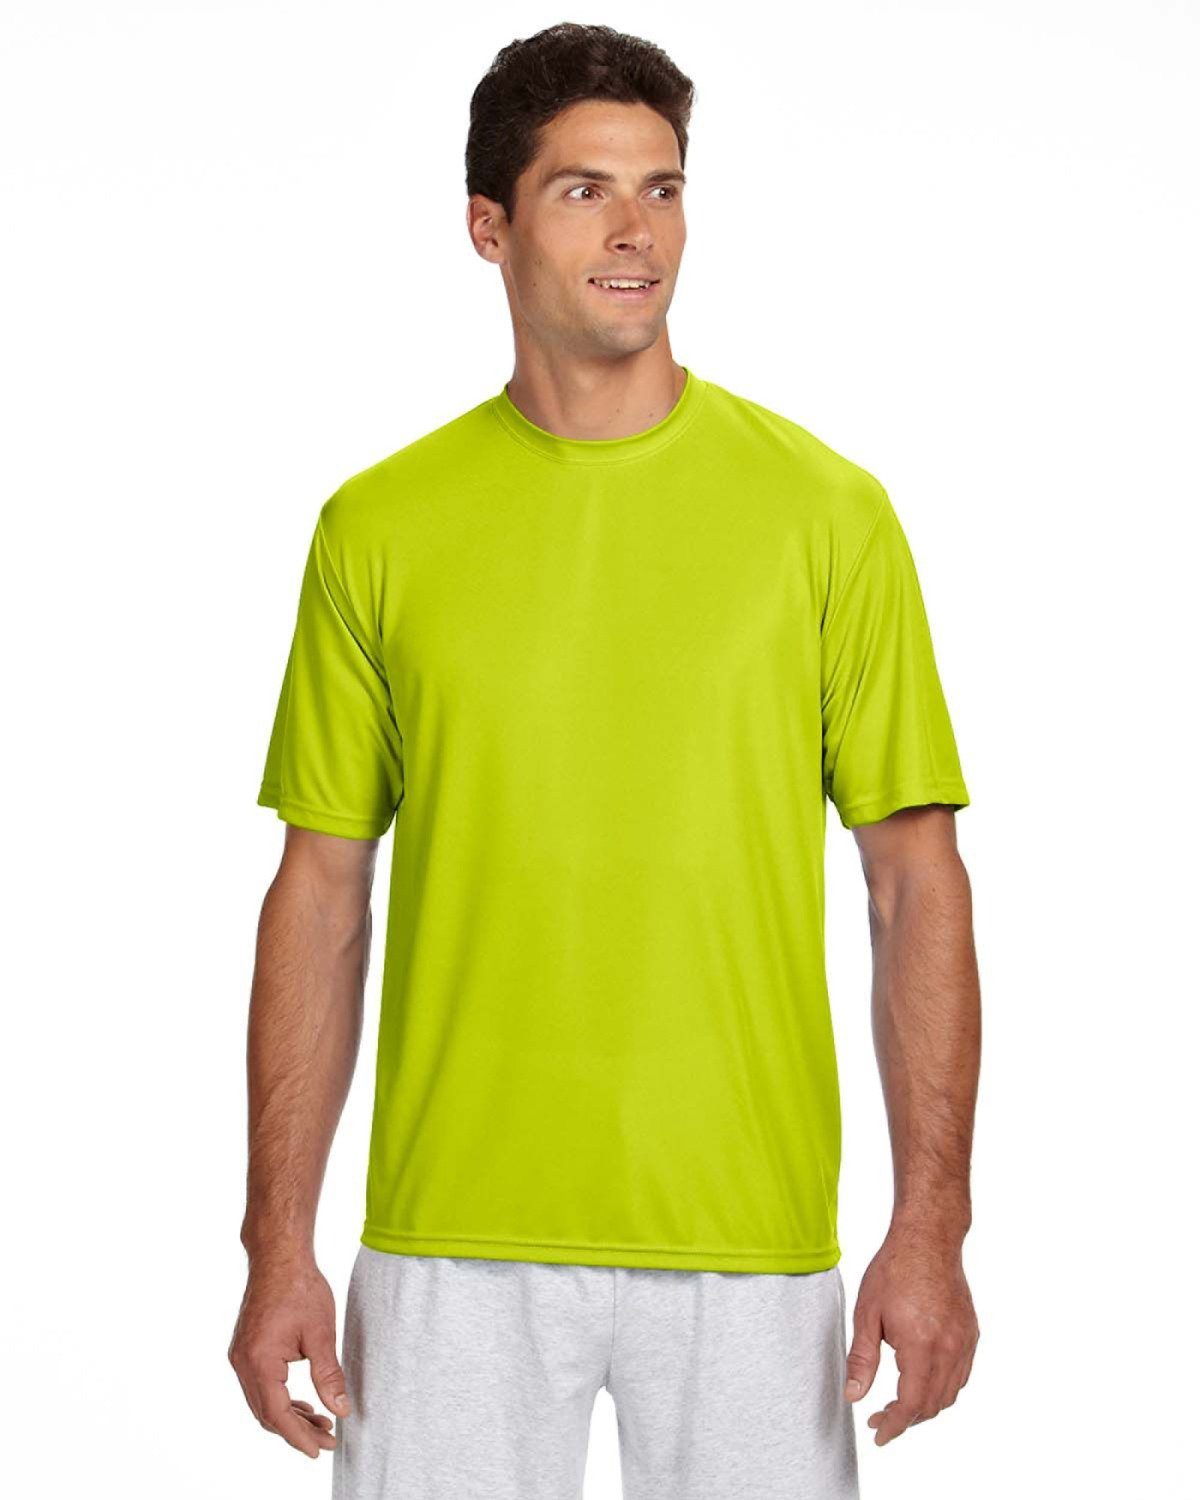 A4 Adult Cooling Performance T-Shirt, Sfty Yellow, XX-Large